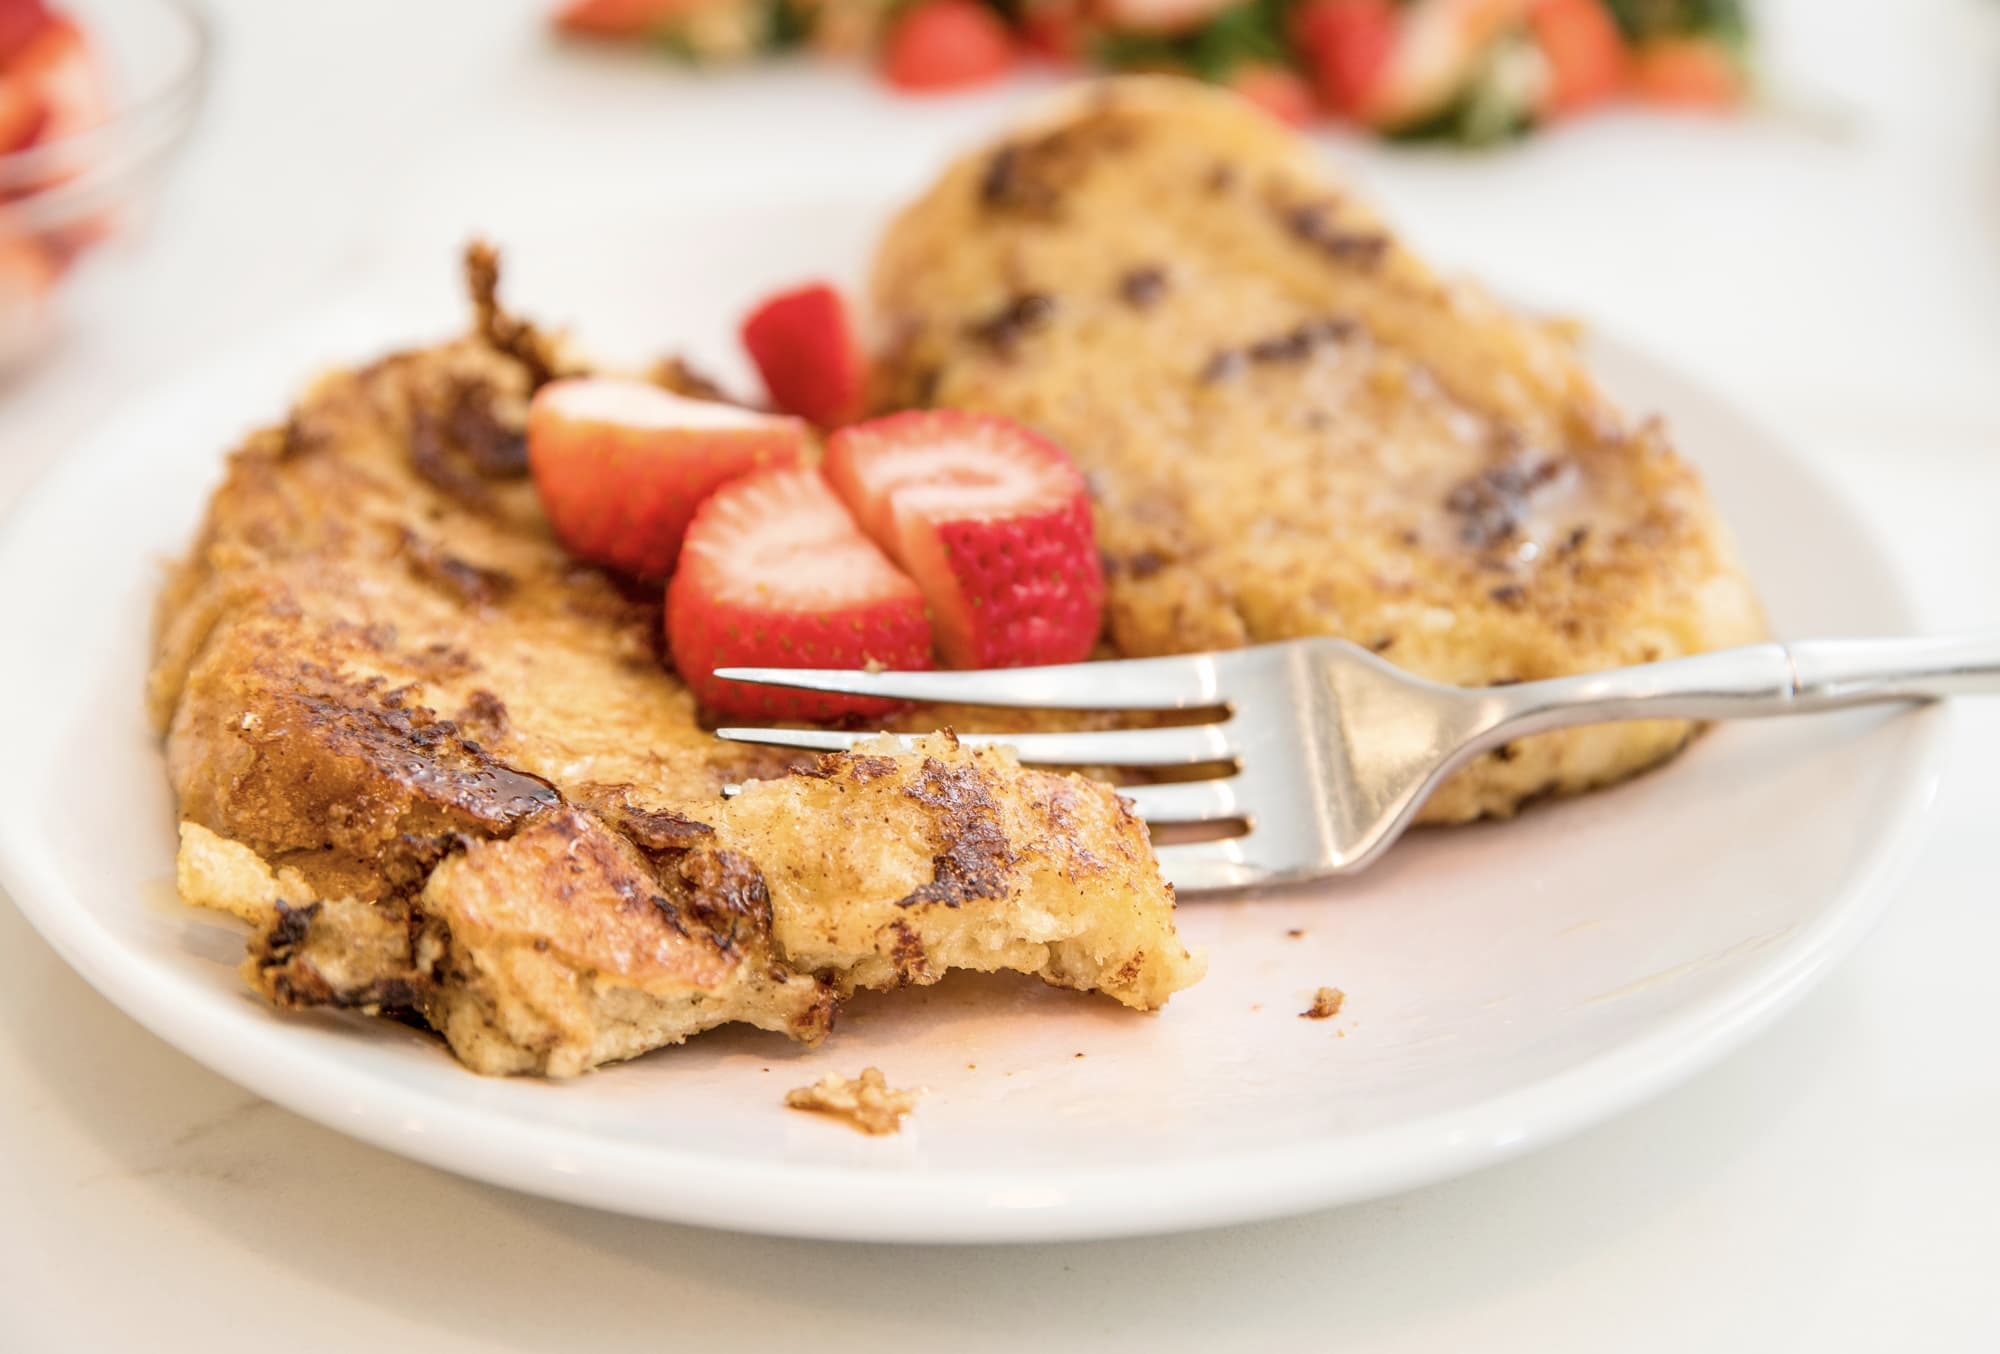 plate of french toast and strawberries